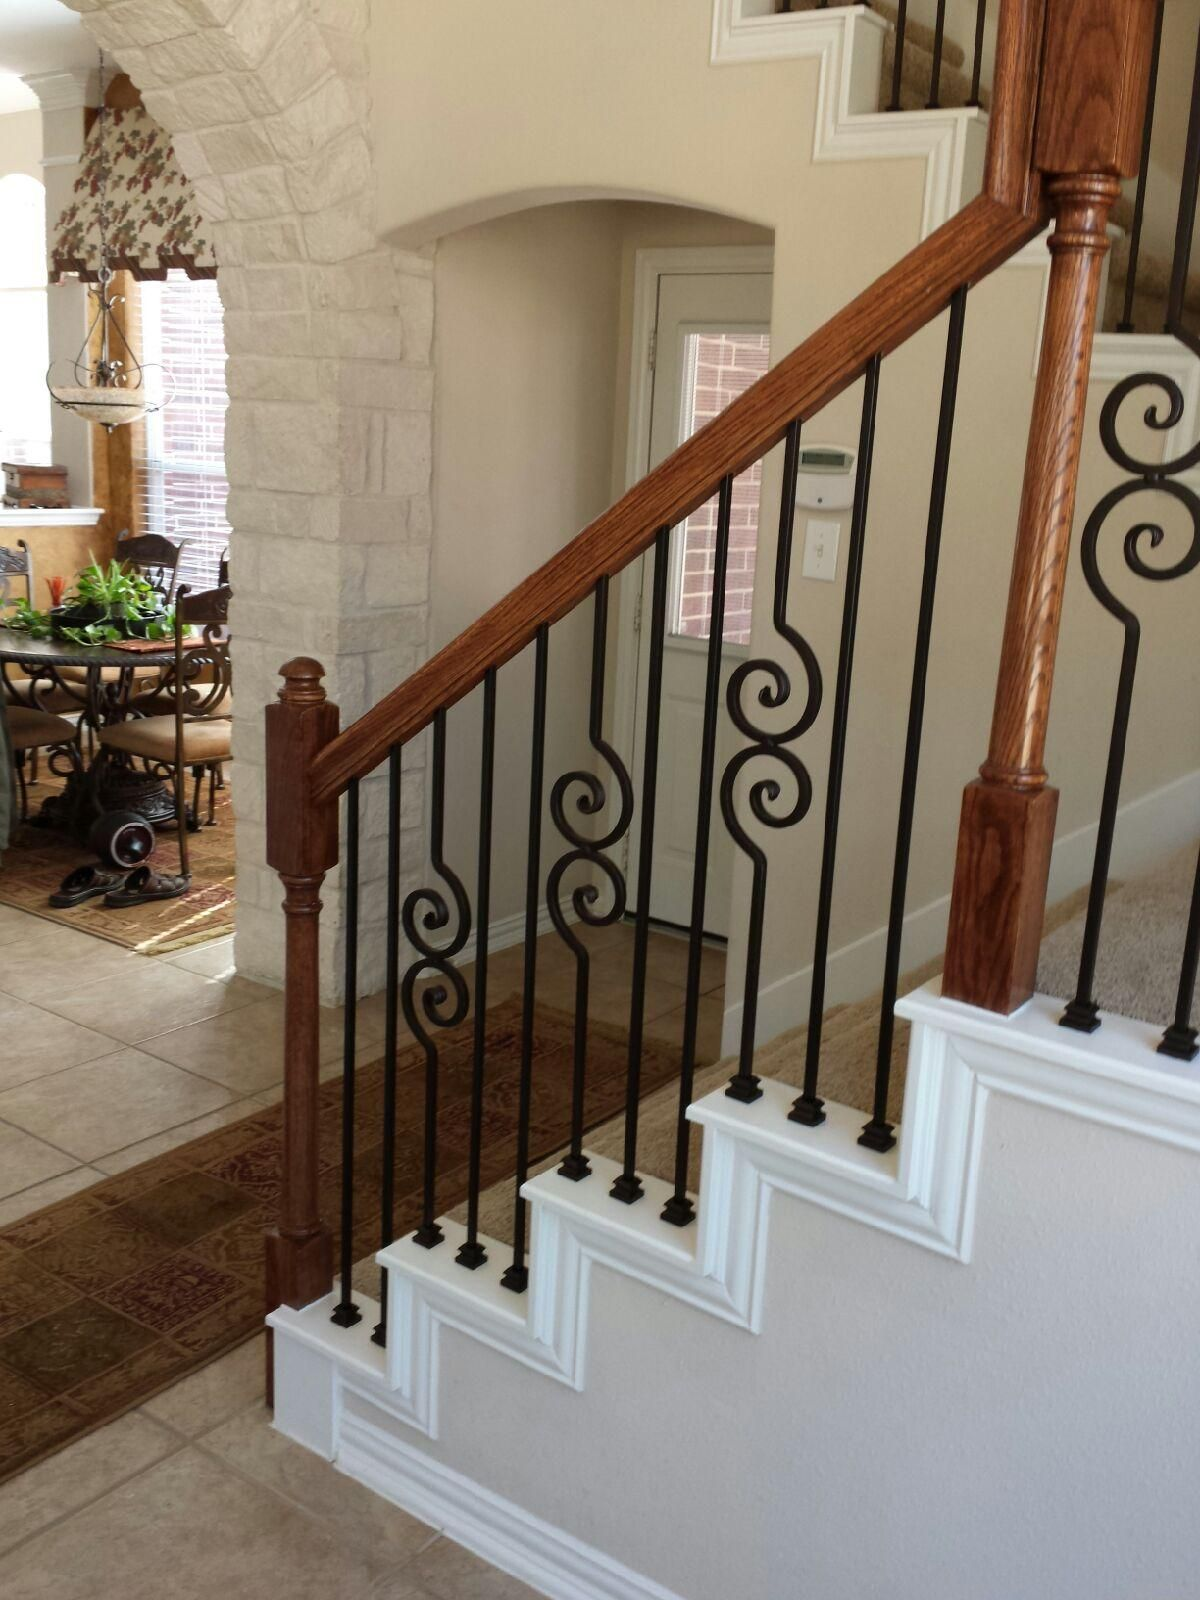 The Ingram Residence Iron Stair Railing Stair Railing Design Stair Railing